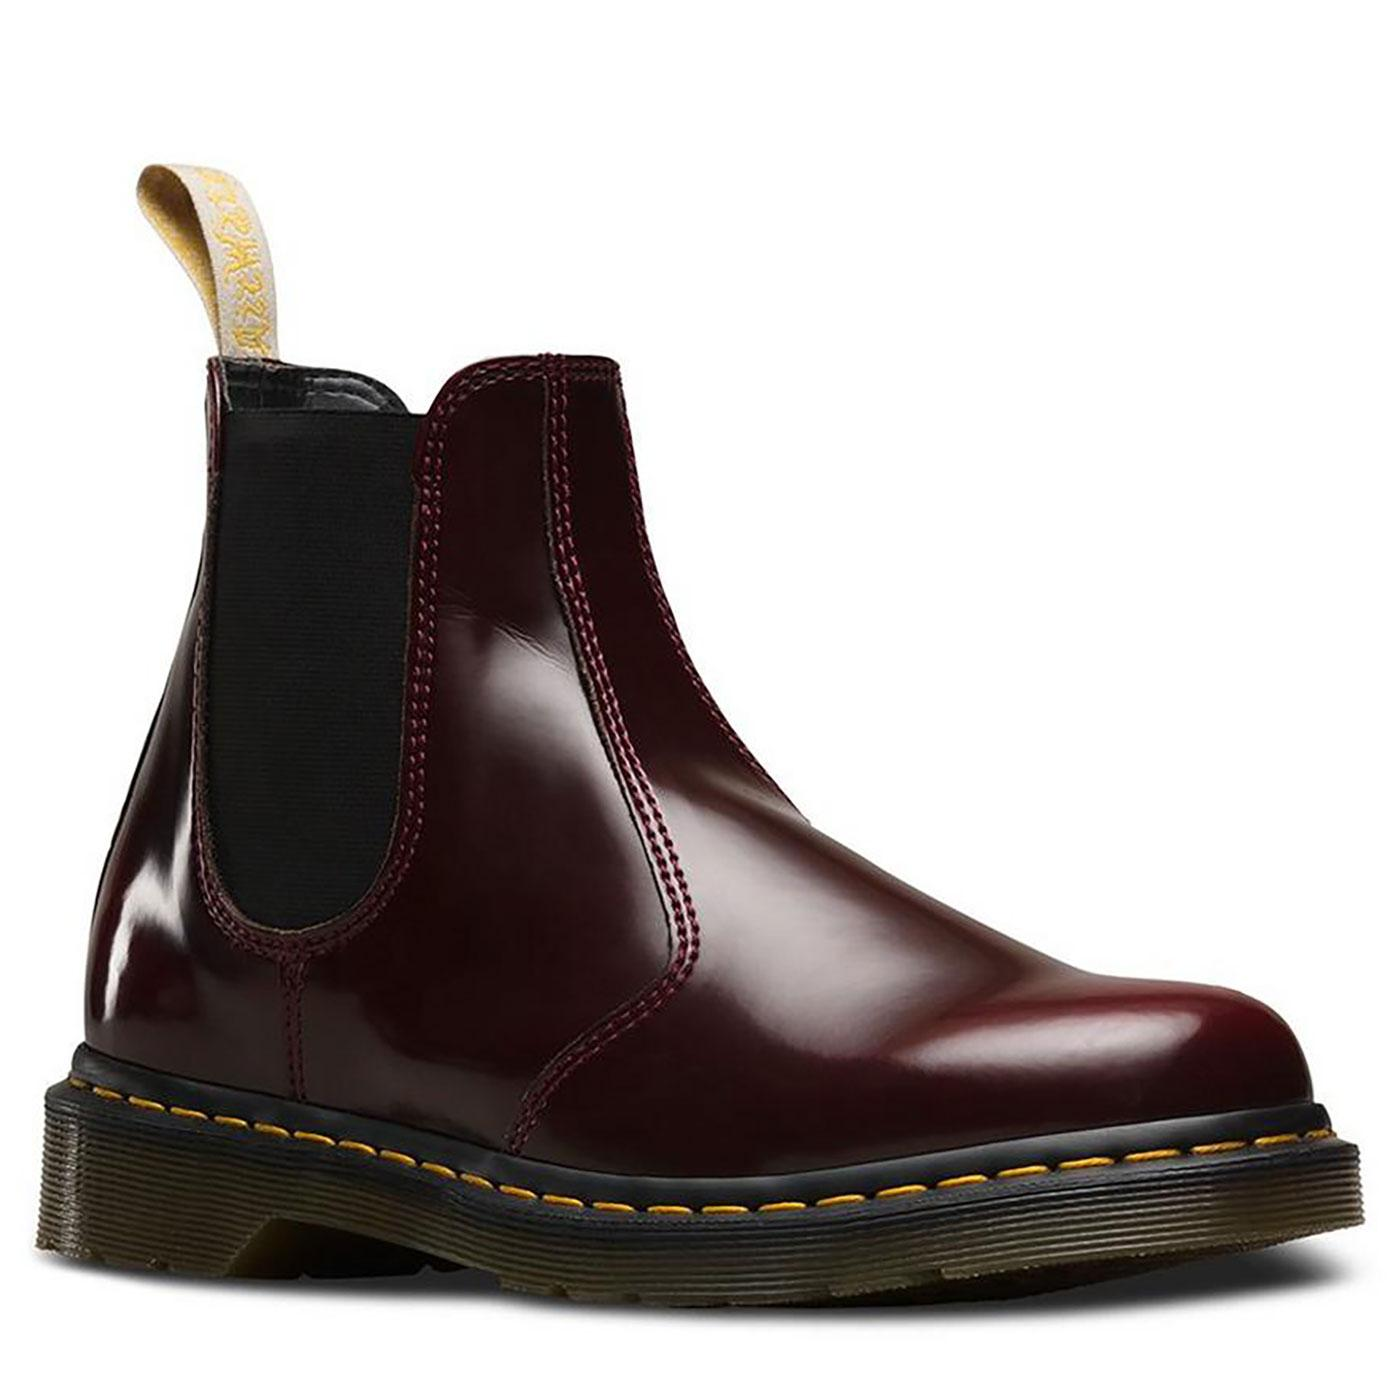 Vegan 2976 DR MARTENS Oxford Rub Off Chelsea Boots